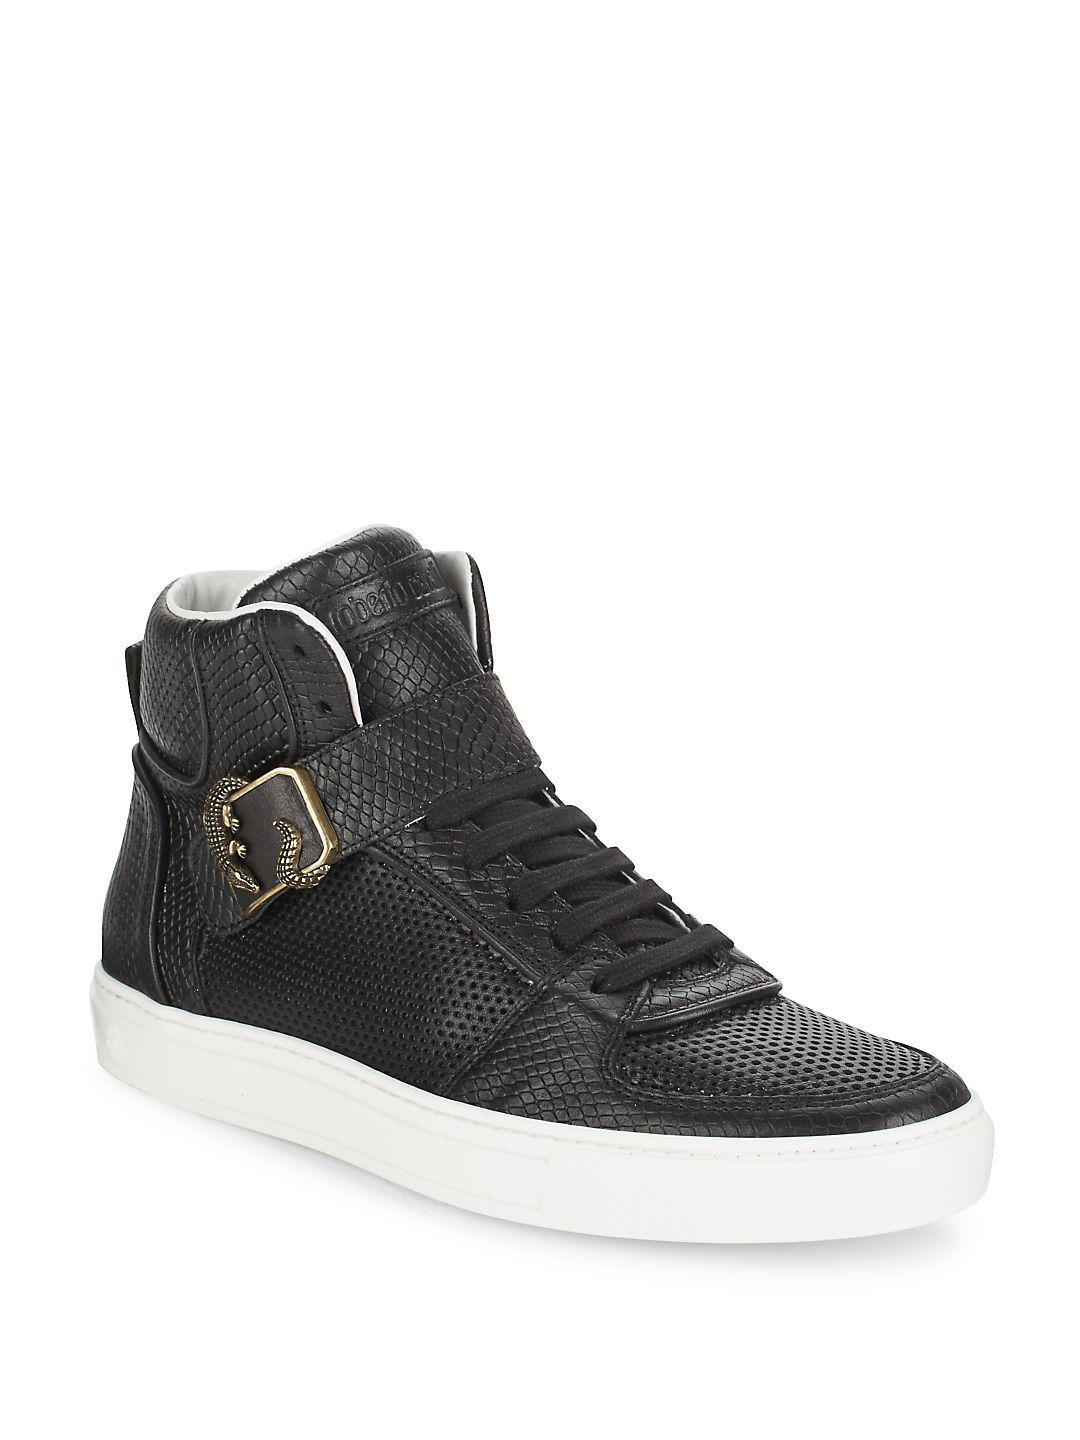 8bf95a81318a4 Lyst - Roberto Cavalli Snake-embossed Leather High Top Sneakers in ...